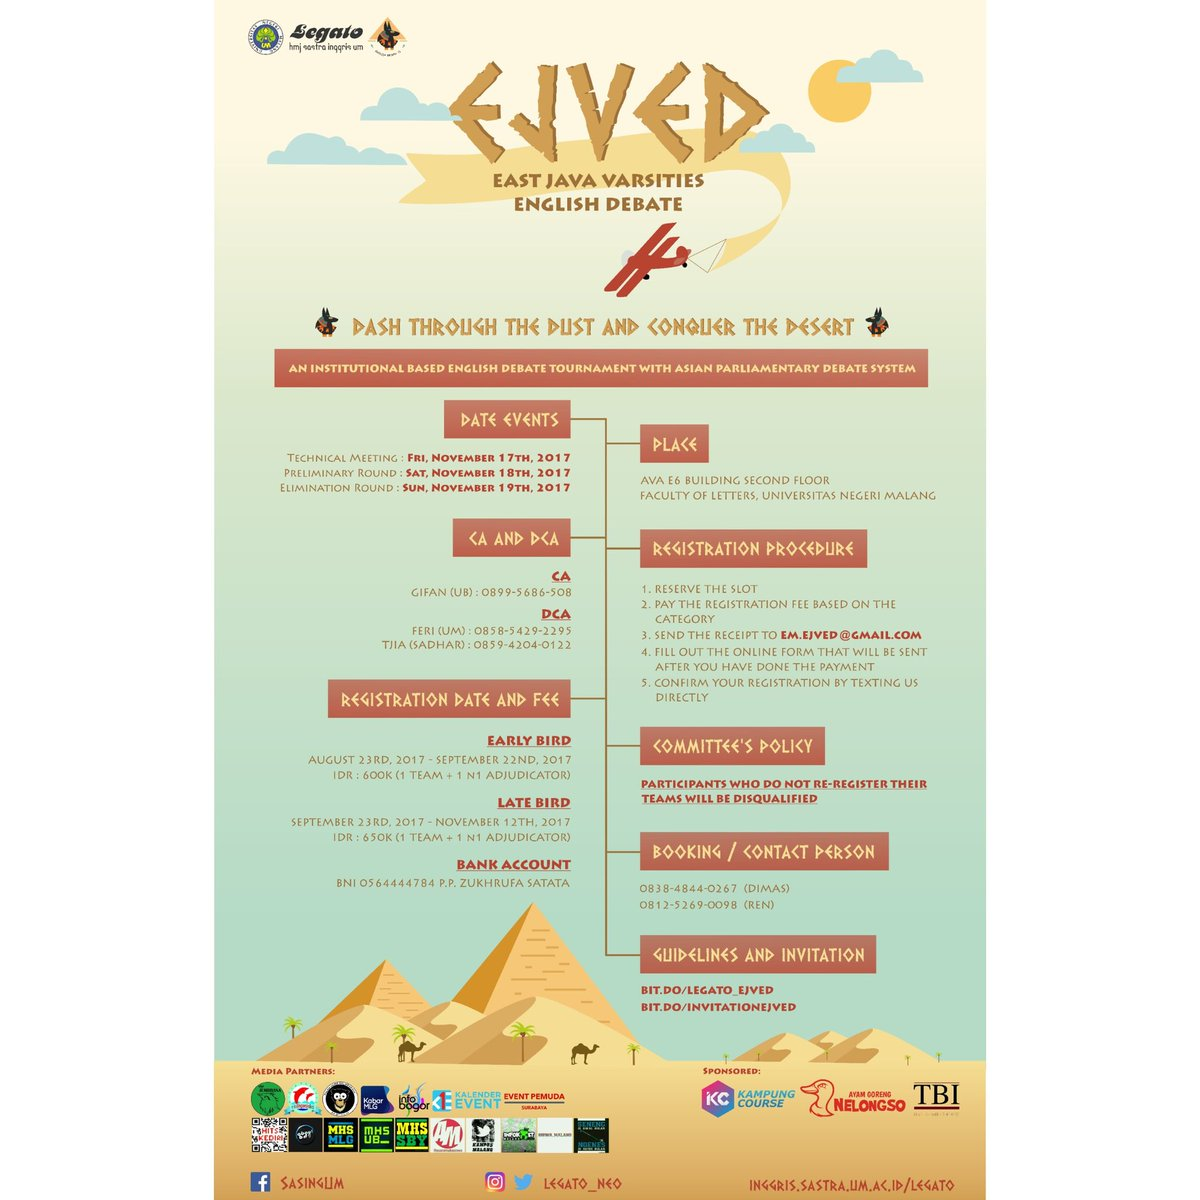 Ejved 2018 on twitter guideline and invitation httpst ejved 2018 on twitter guideline and invitation httpstki2tb9ccmr httpstyyqltxx6sg ejved2017 stopboris Gallery